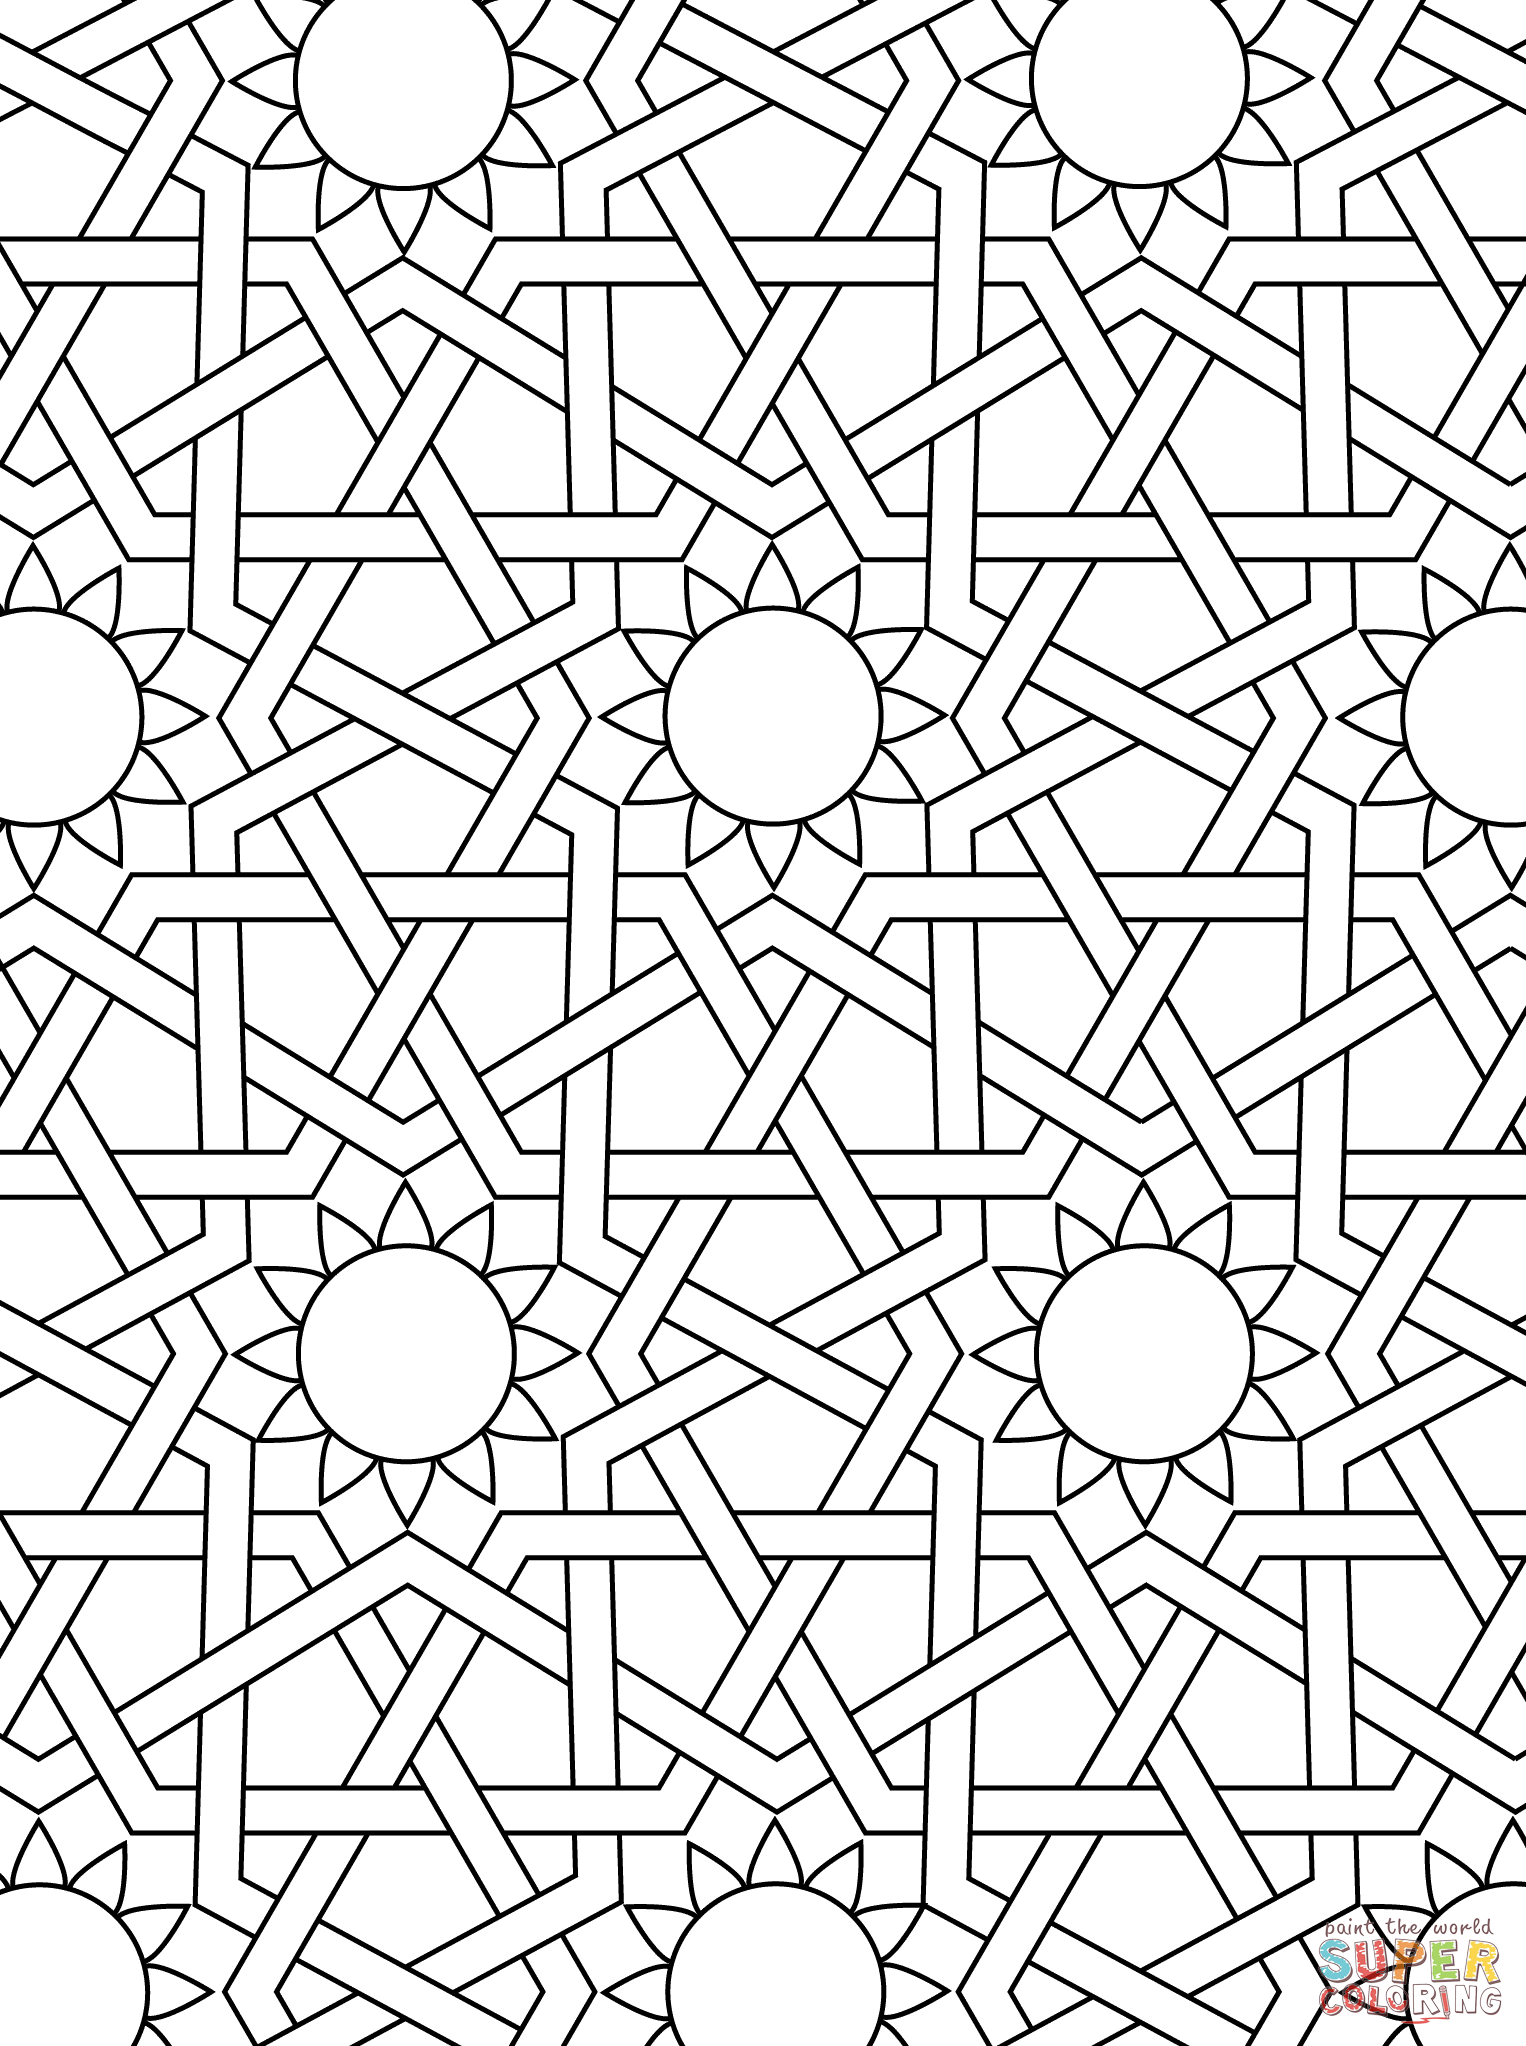 Drawn ornamental printable coloring Vector kids art coloring coloring